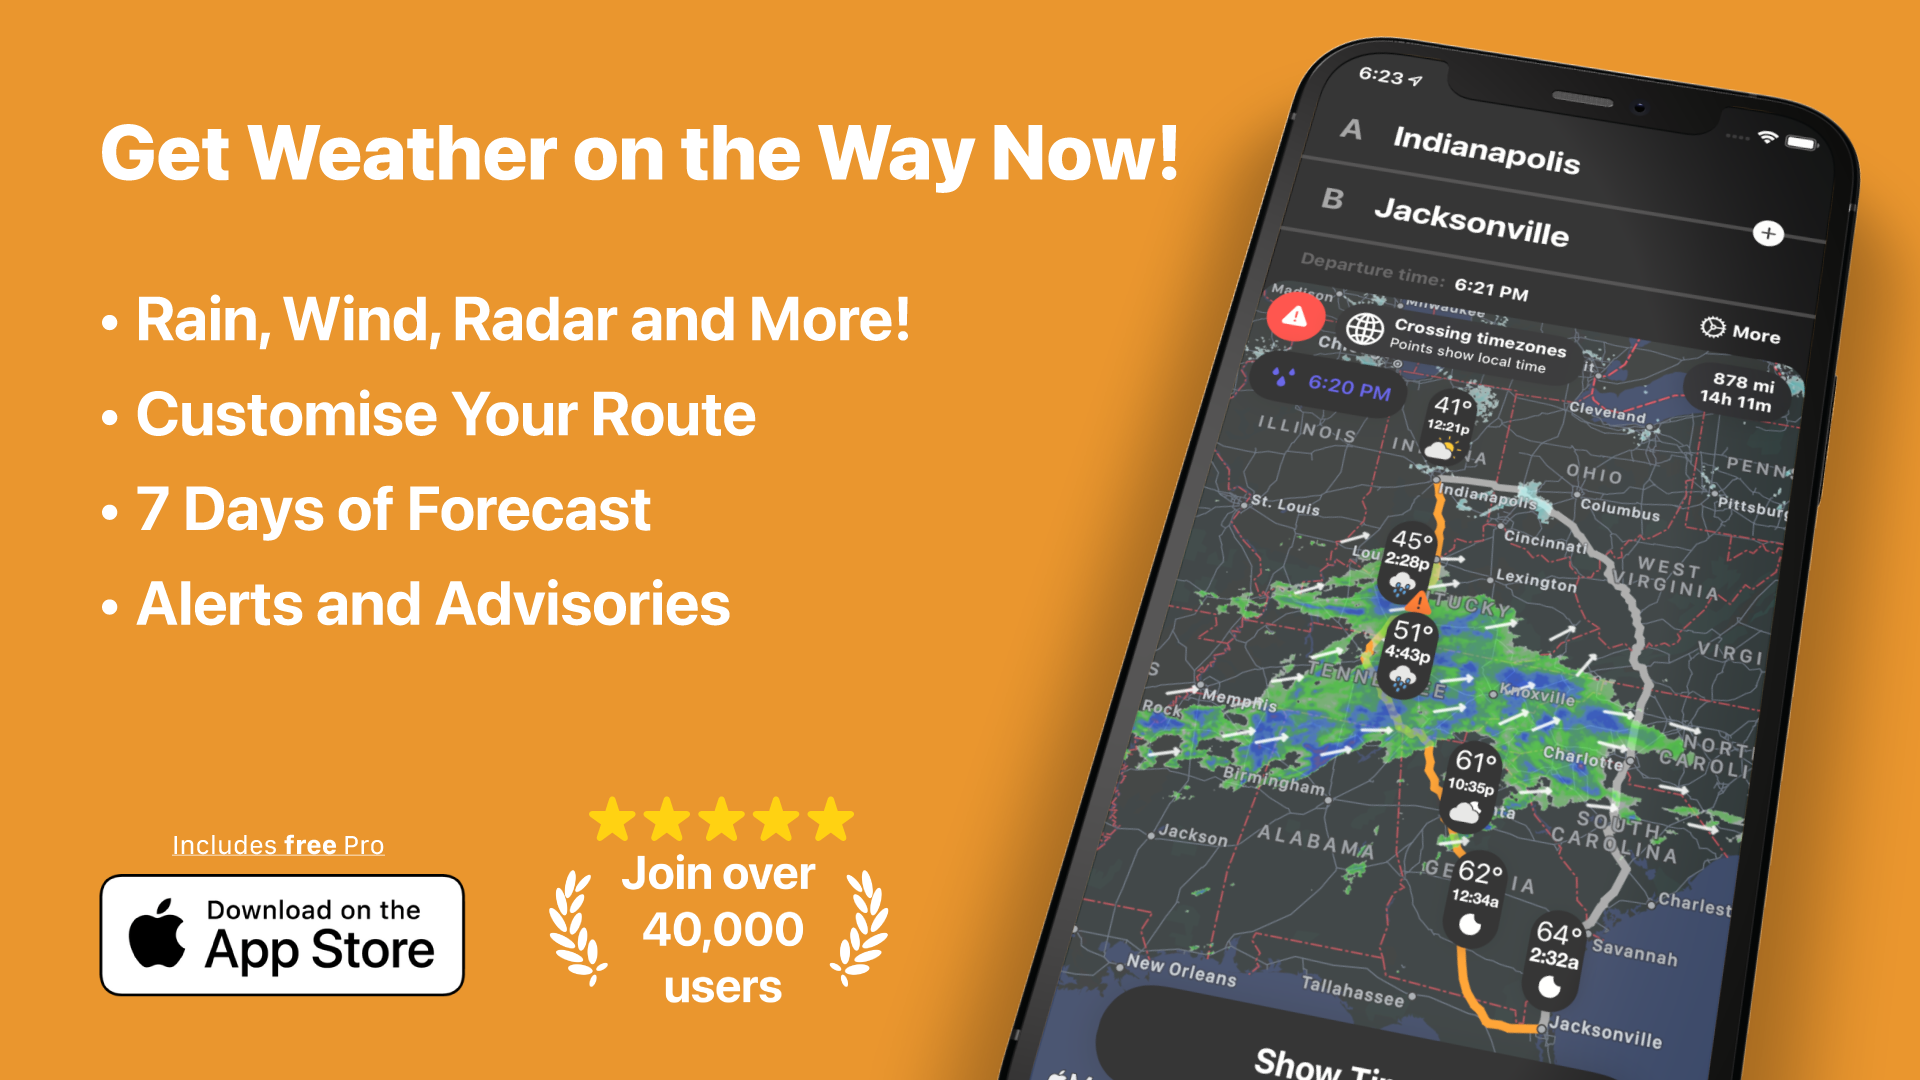 Get Weather on the Way Now!             • Rain, Wind, Radar and More!             • Customise Your Route             • 7 Days of Forecast              • Alerts and Advisories              Download on the AppStore